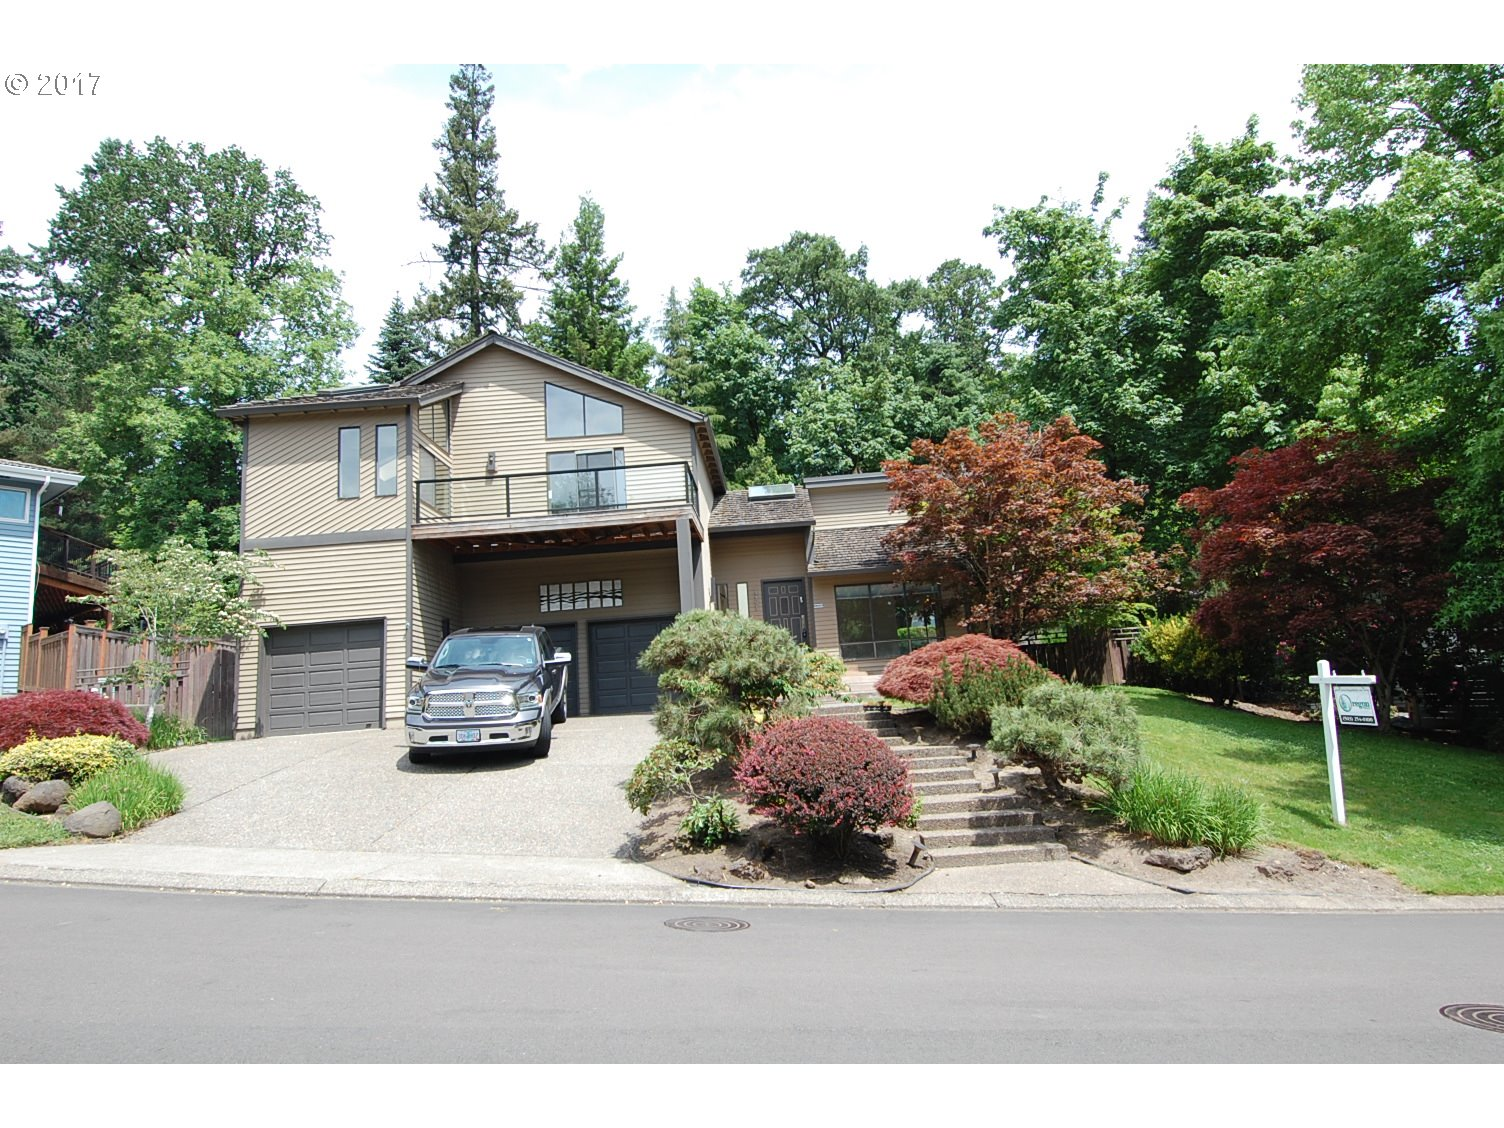 3393 TEMPEST DR, Lake Oswego OR 97035